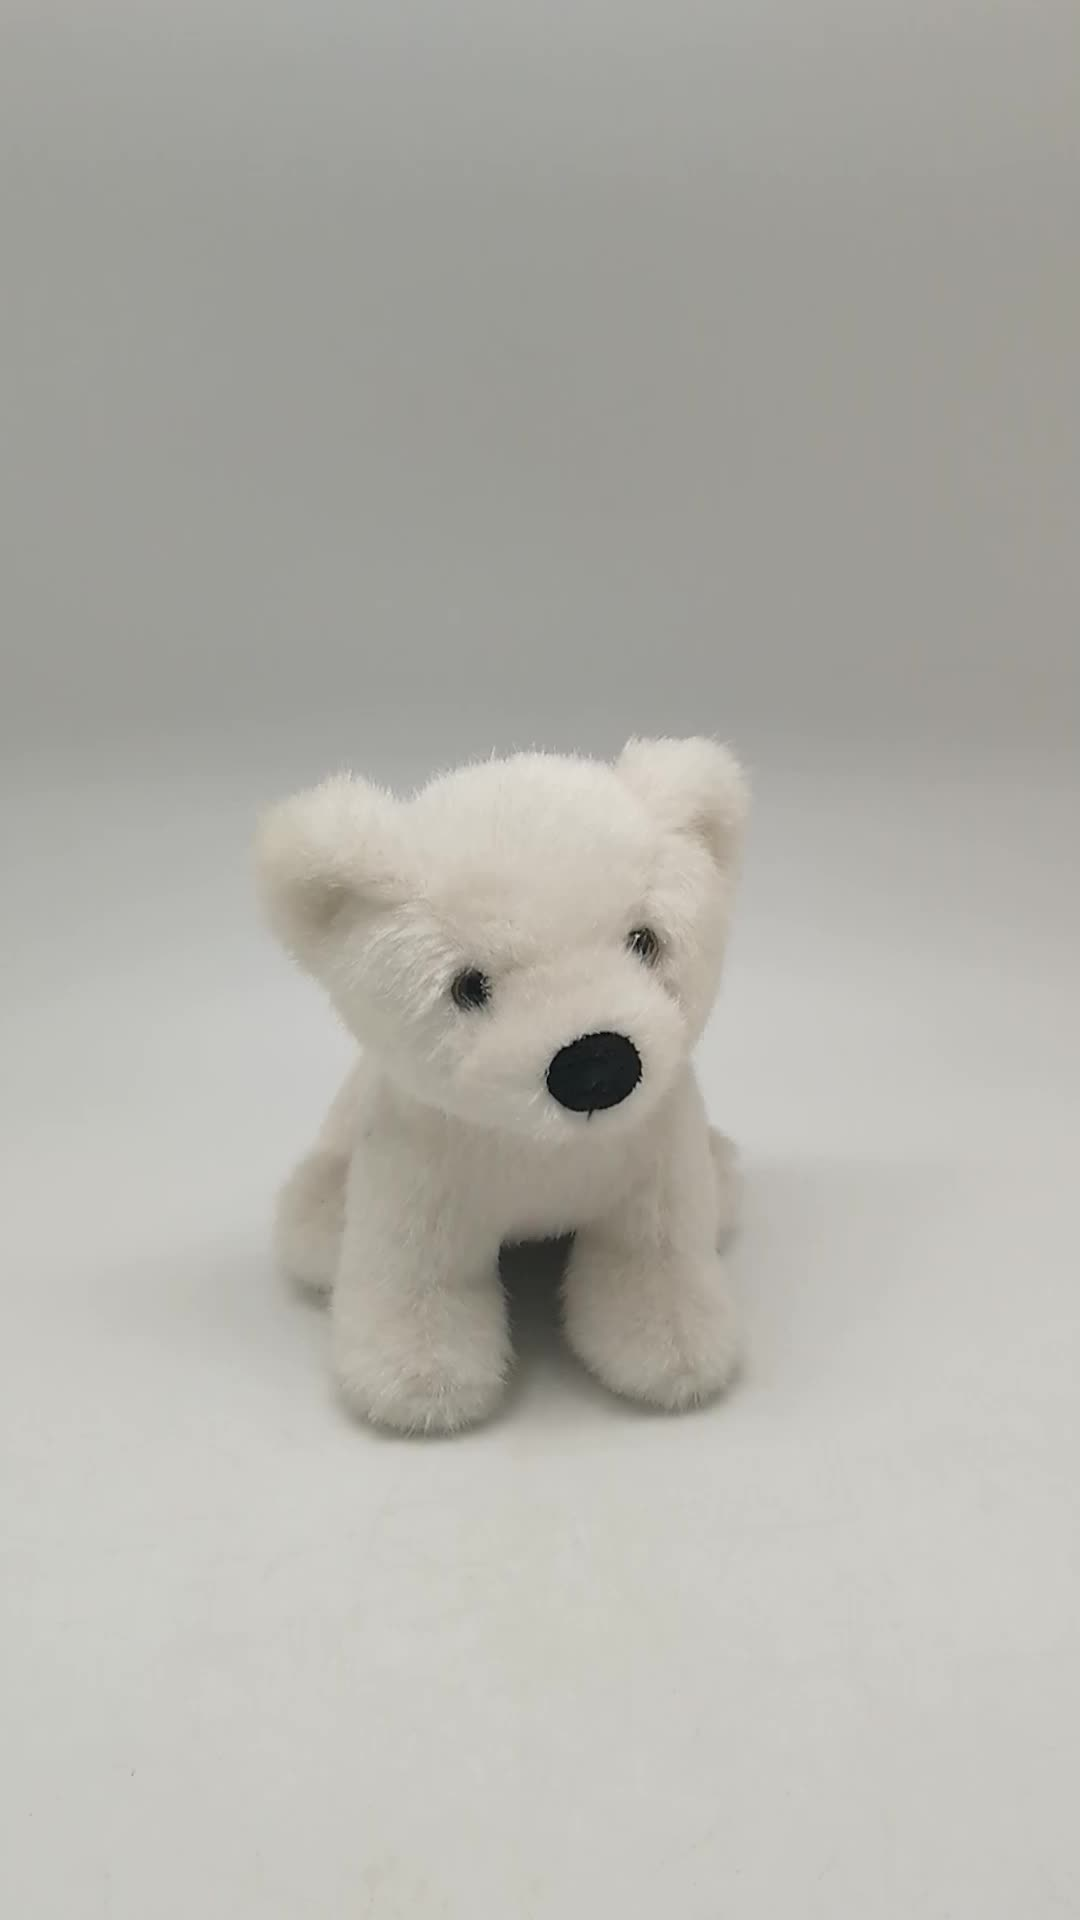 Polar Bear Toys : High quality white polar bear stuffed plush animal toy